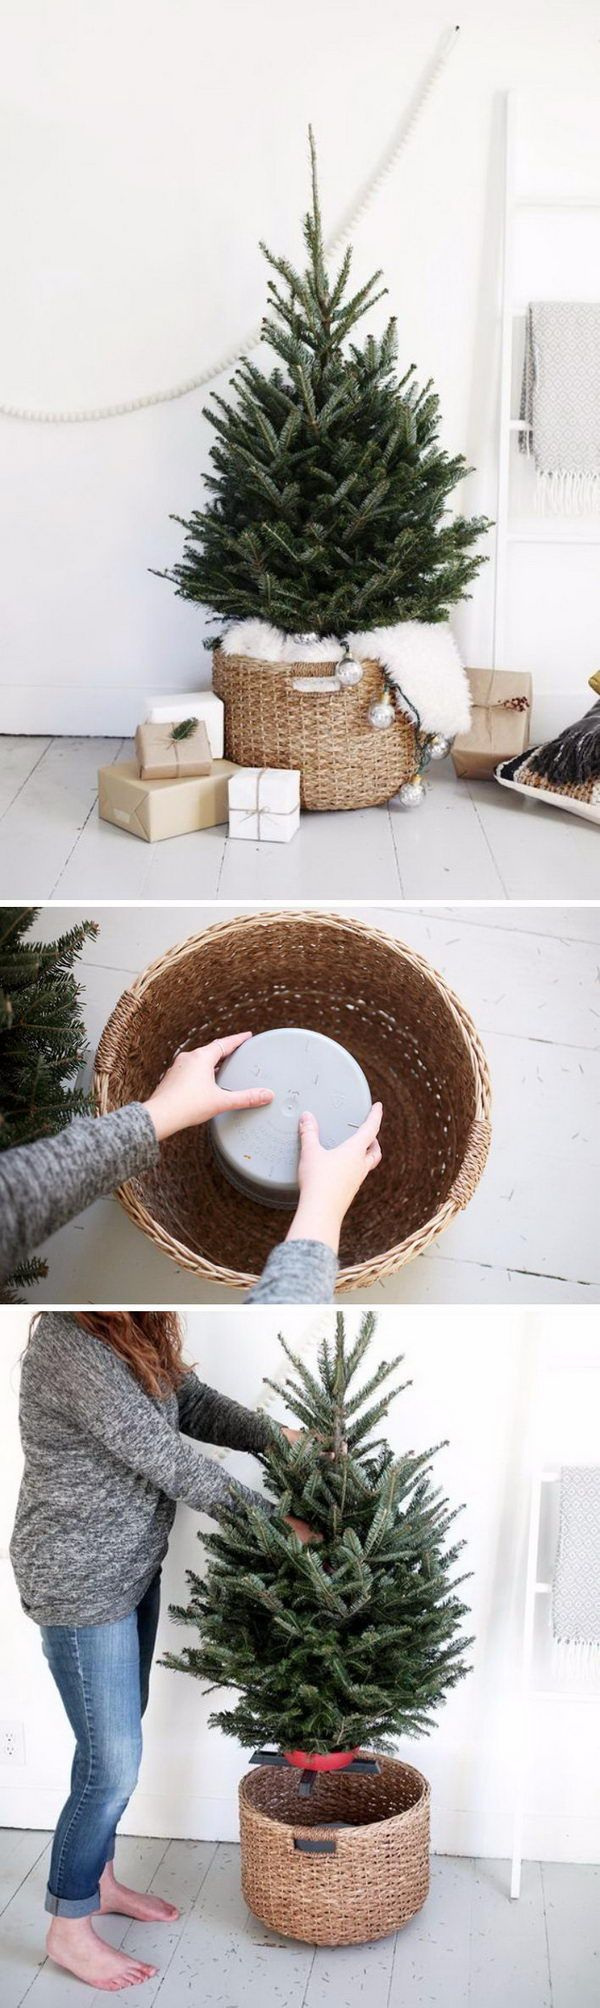 Diy Christmas Tree Stand Using Bucket Upside Down In A Large